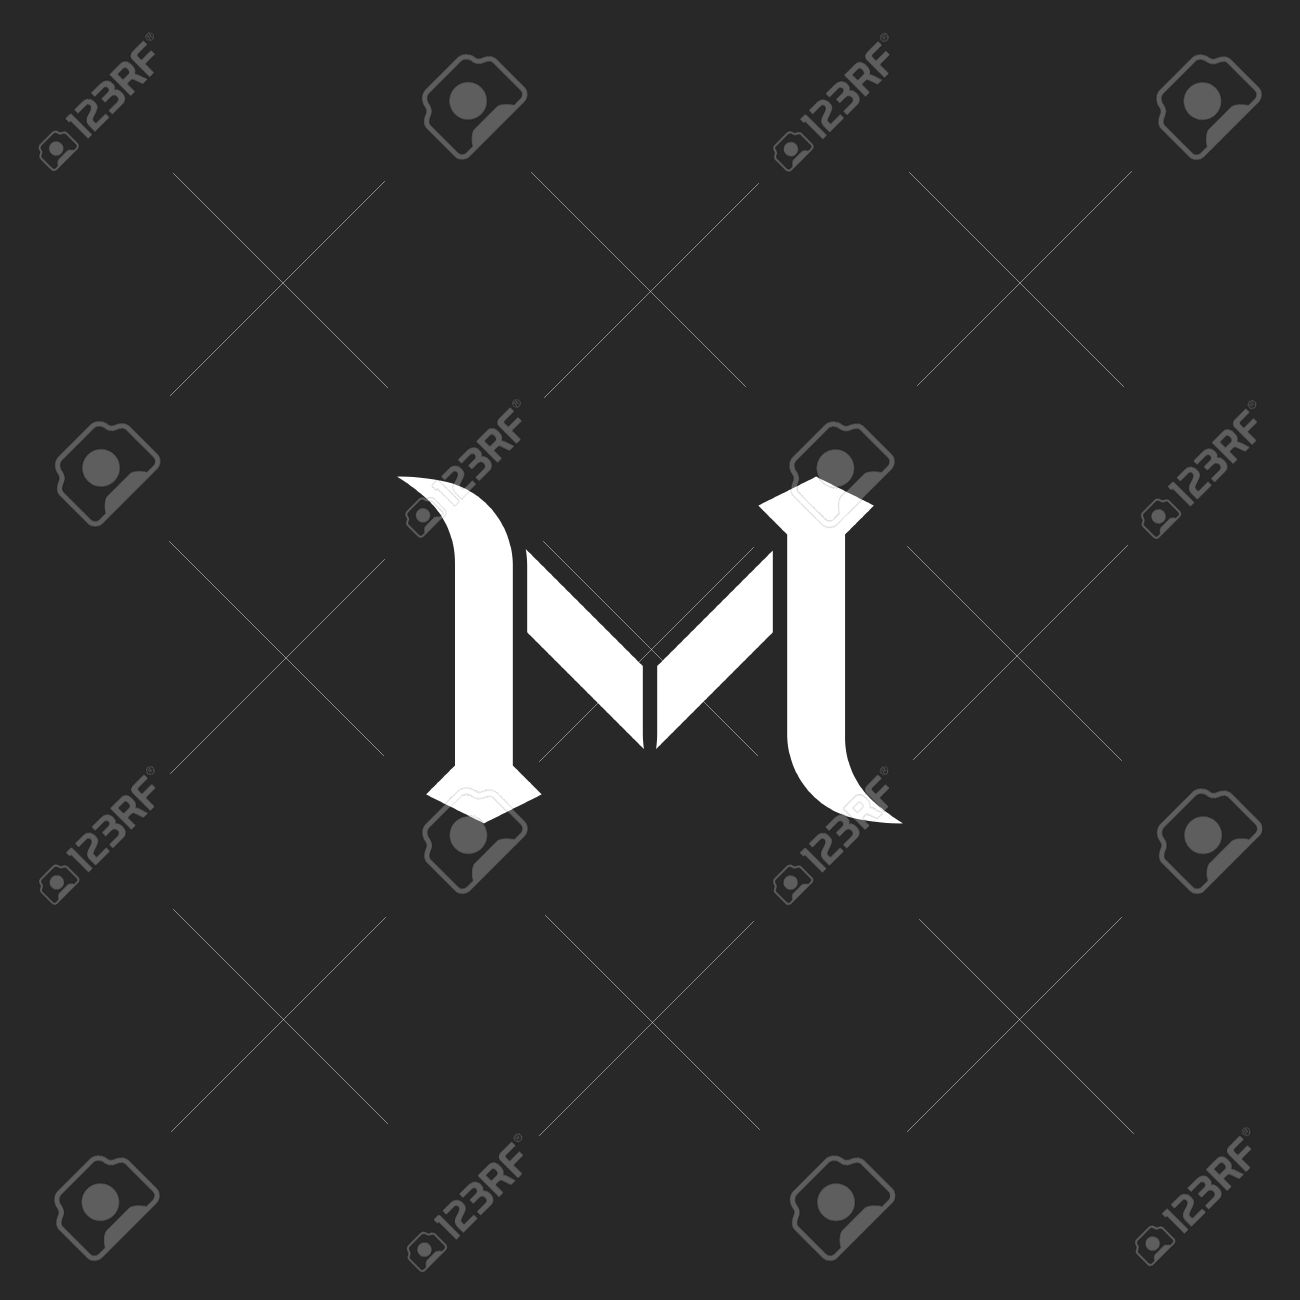 Letter m logo medieval style wedding invitation mockup vintage letter m logo medieval style wedding invitation mockup vintage calligraphic design element for business stopboris